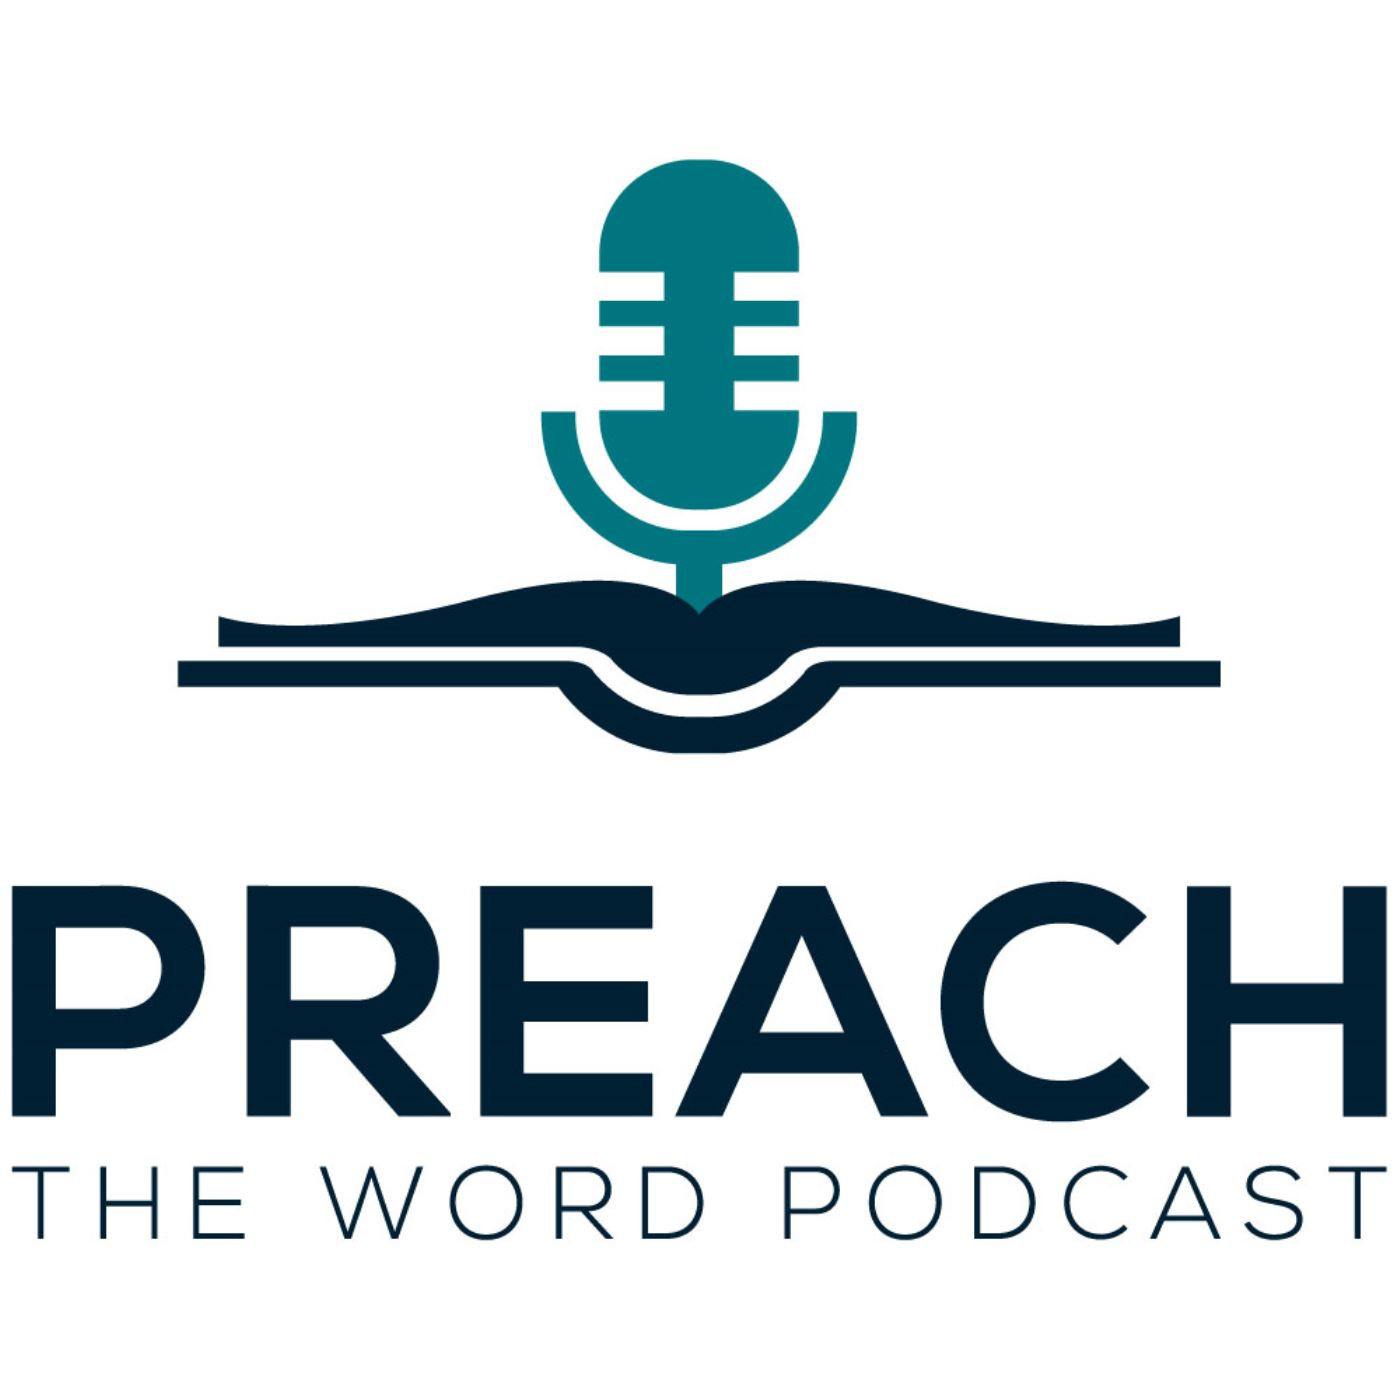 Preach the Word Podcast